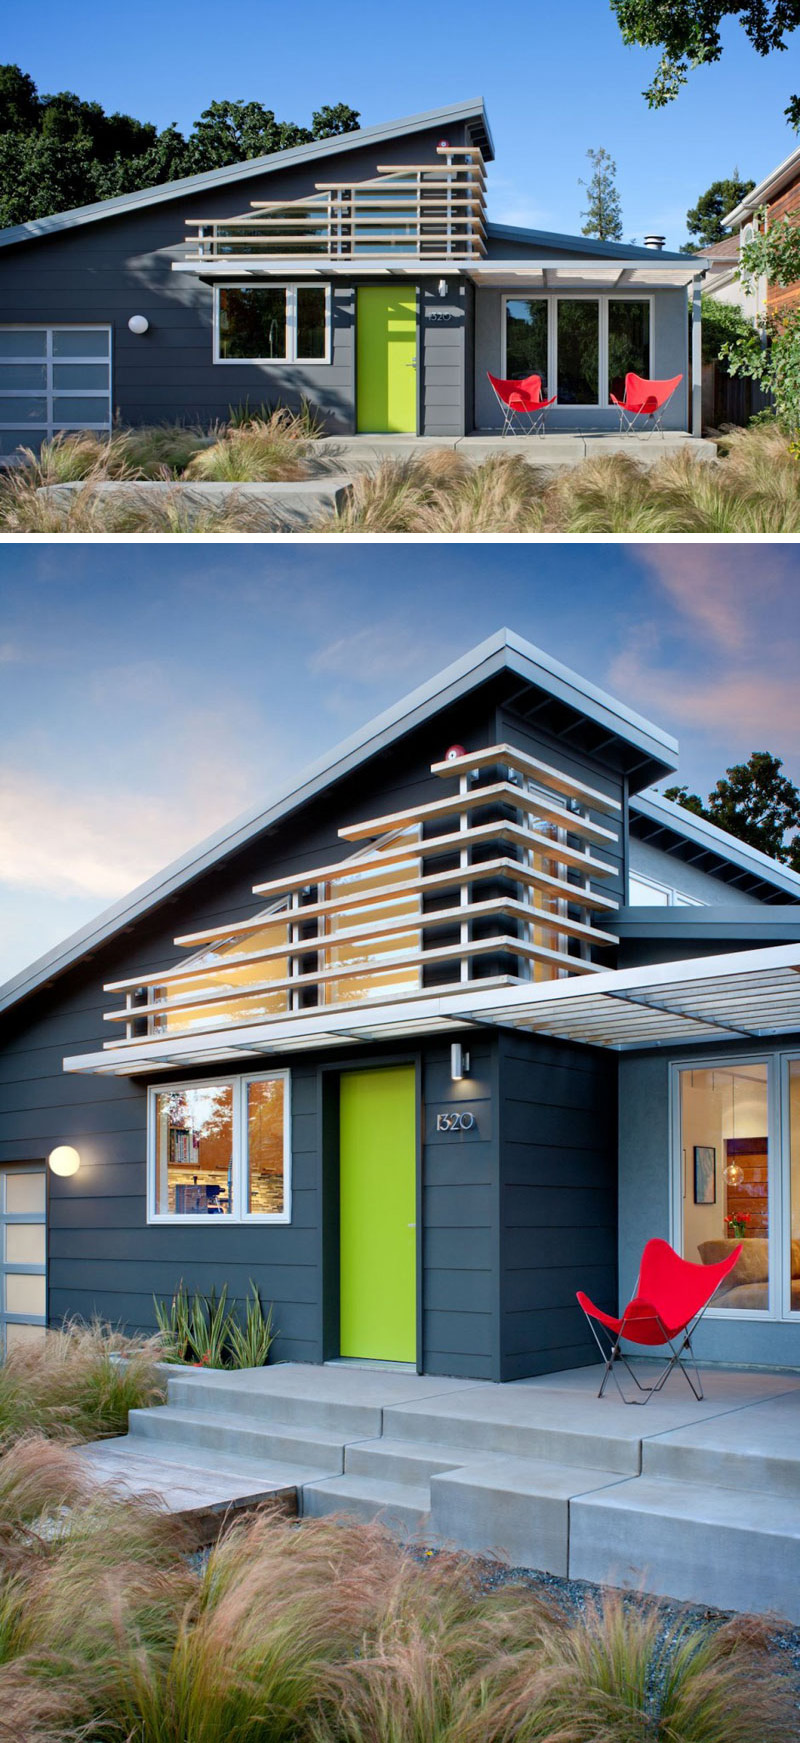 7 Examples Of Colorful Doors That Brighten Up These Modern Homes ...